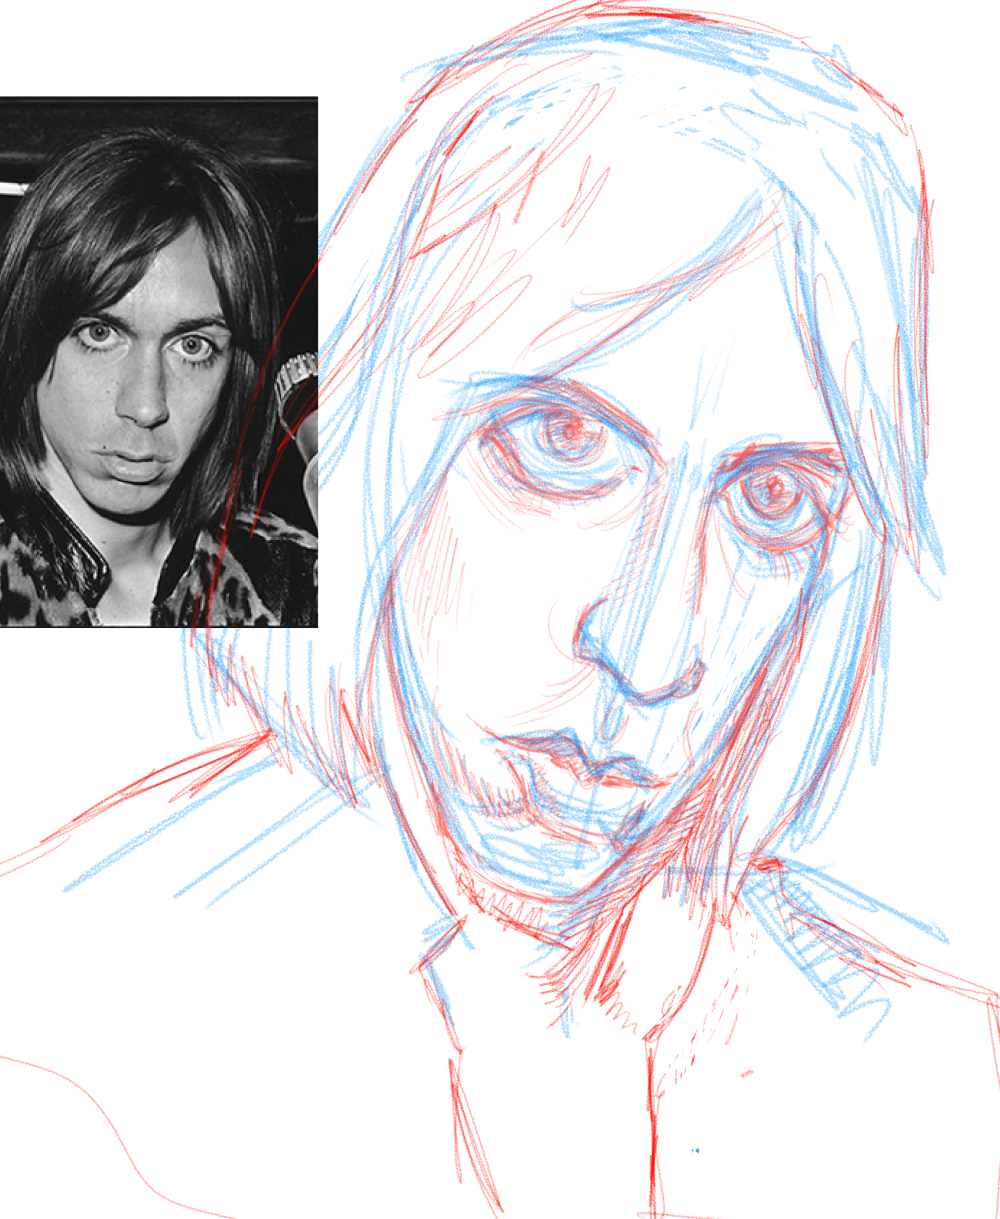 iggy pop sketch